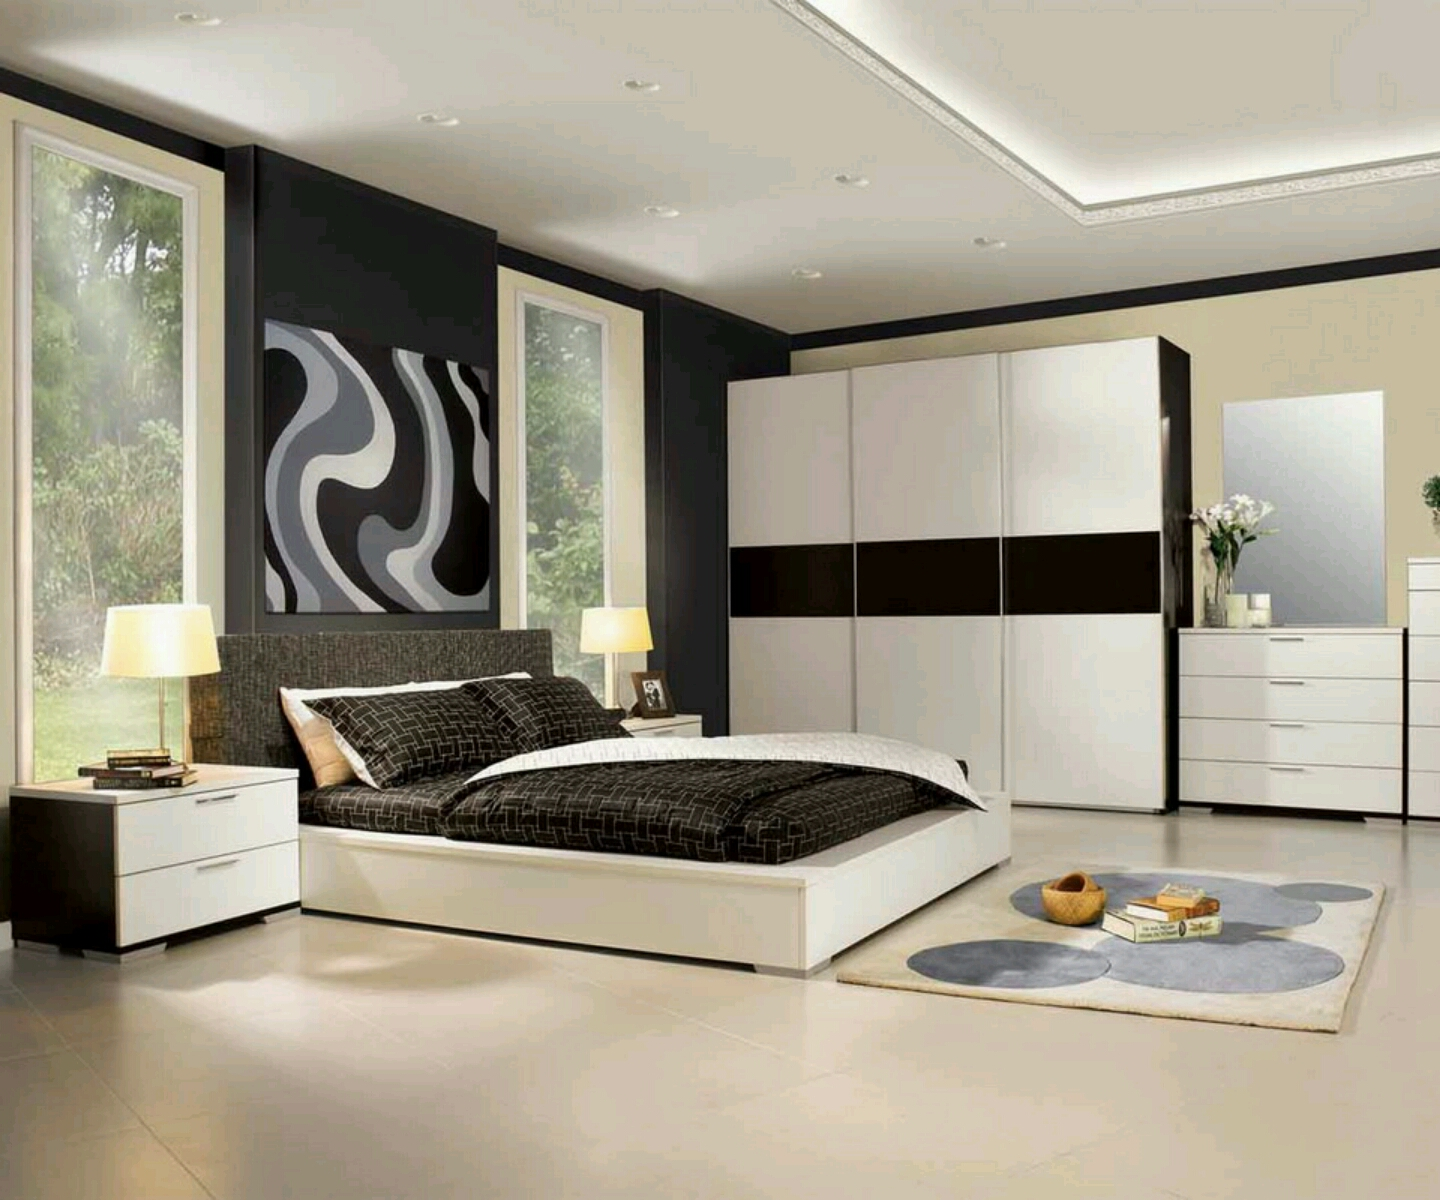 Modern luxury bedroom furniture designs ideas vintage for Bedroom ideas with furniture